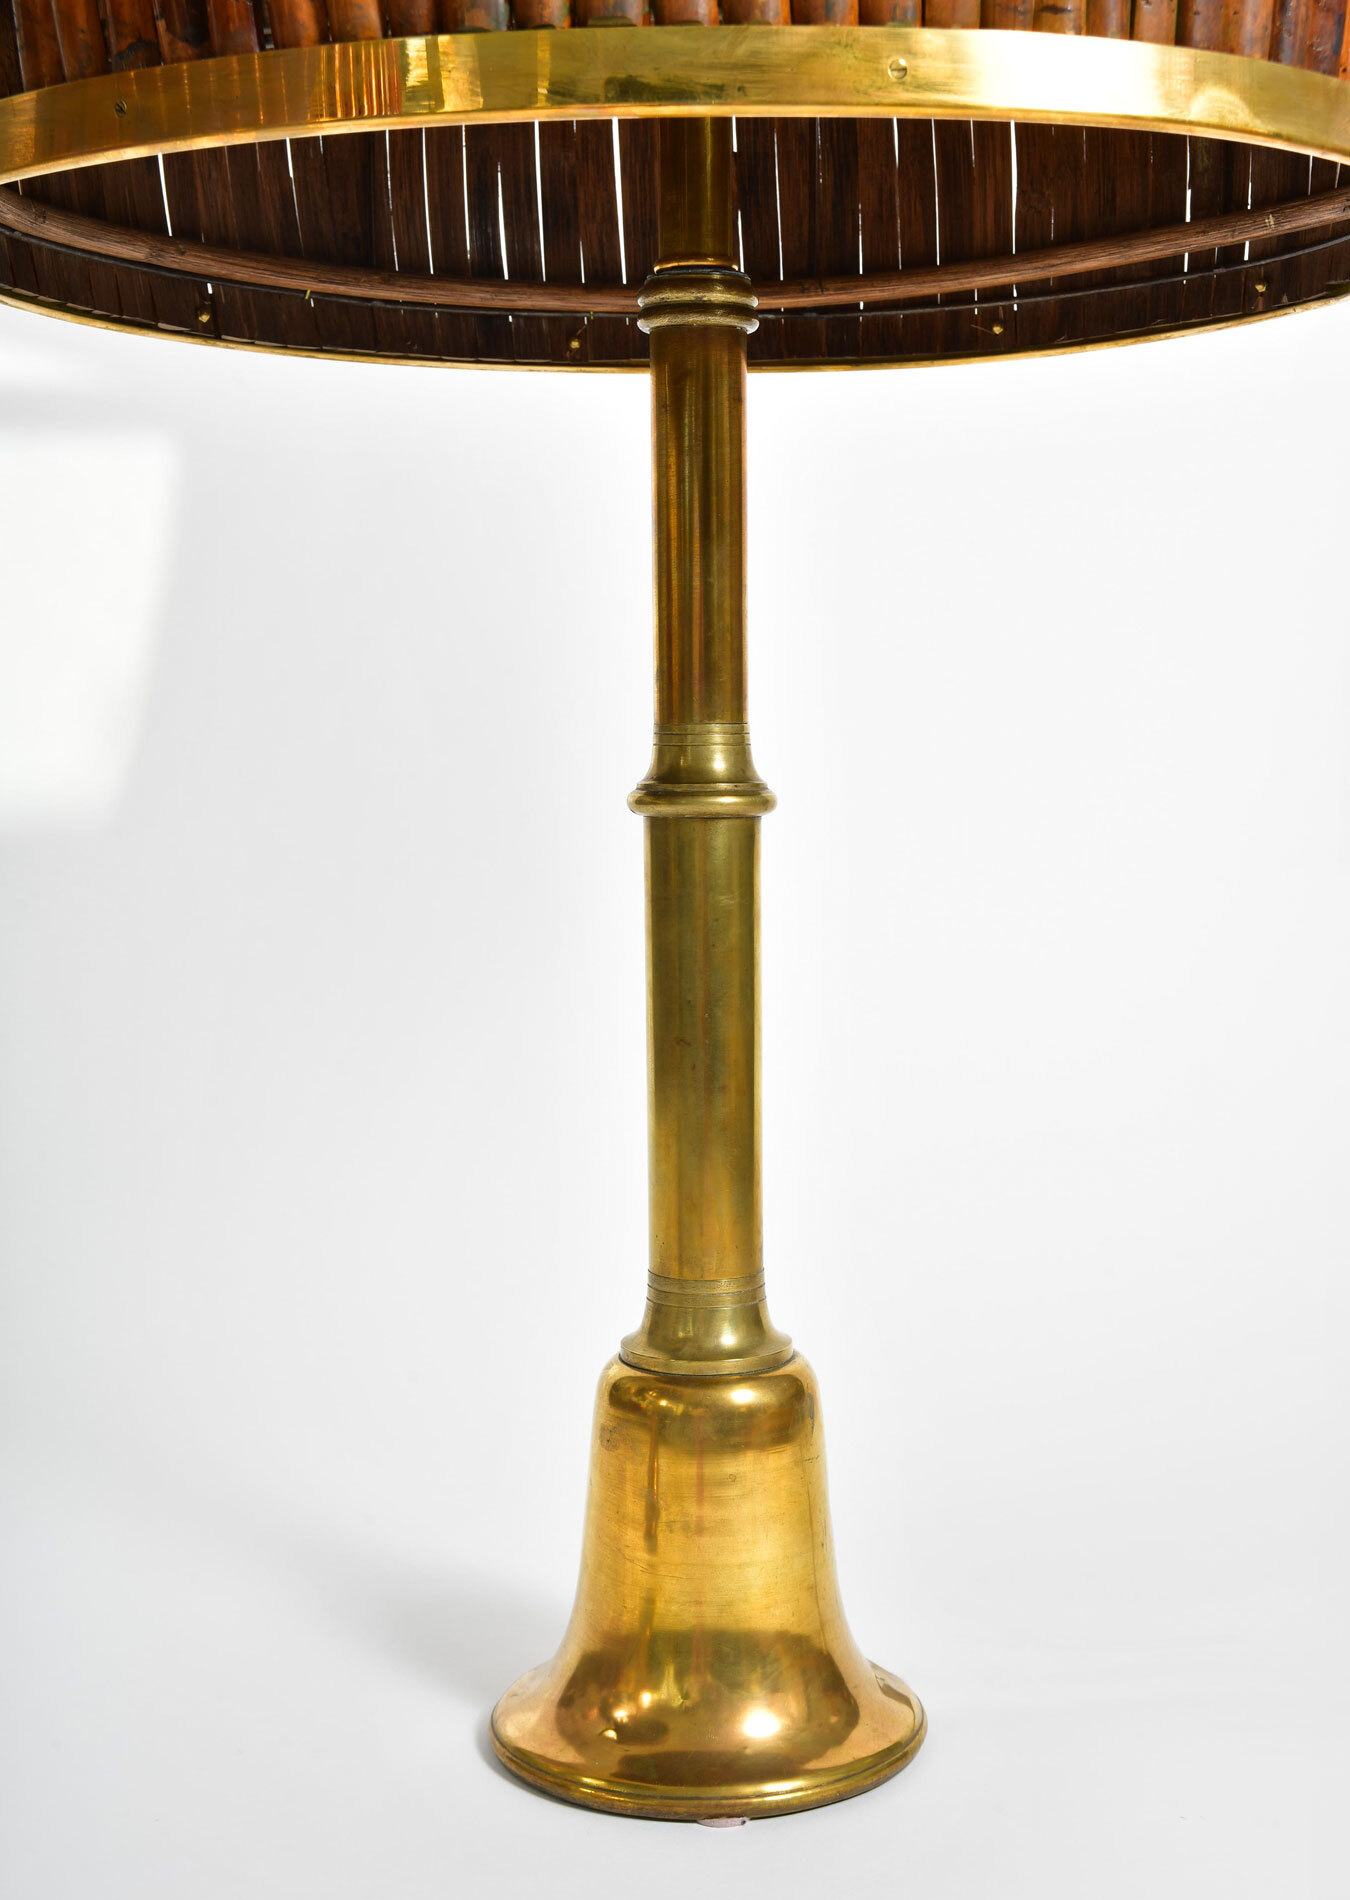 The image for Rattan Table Lamp Crespi 03